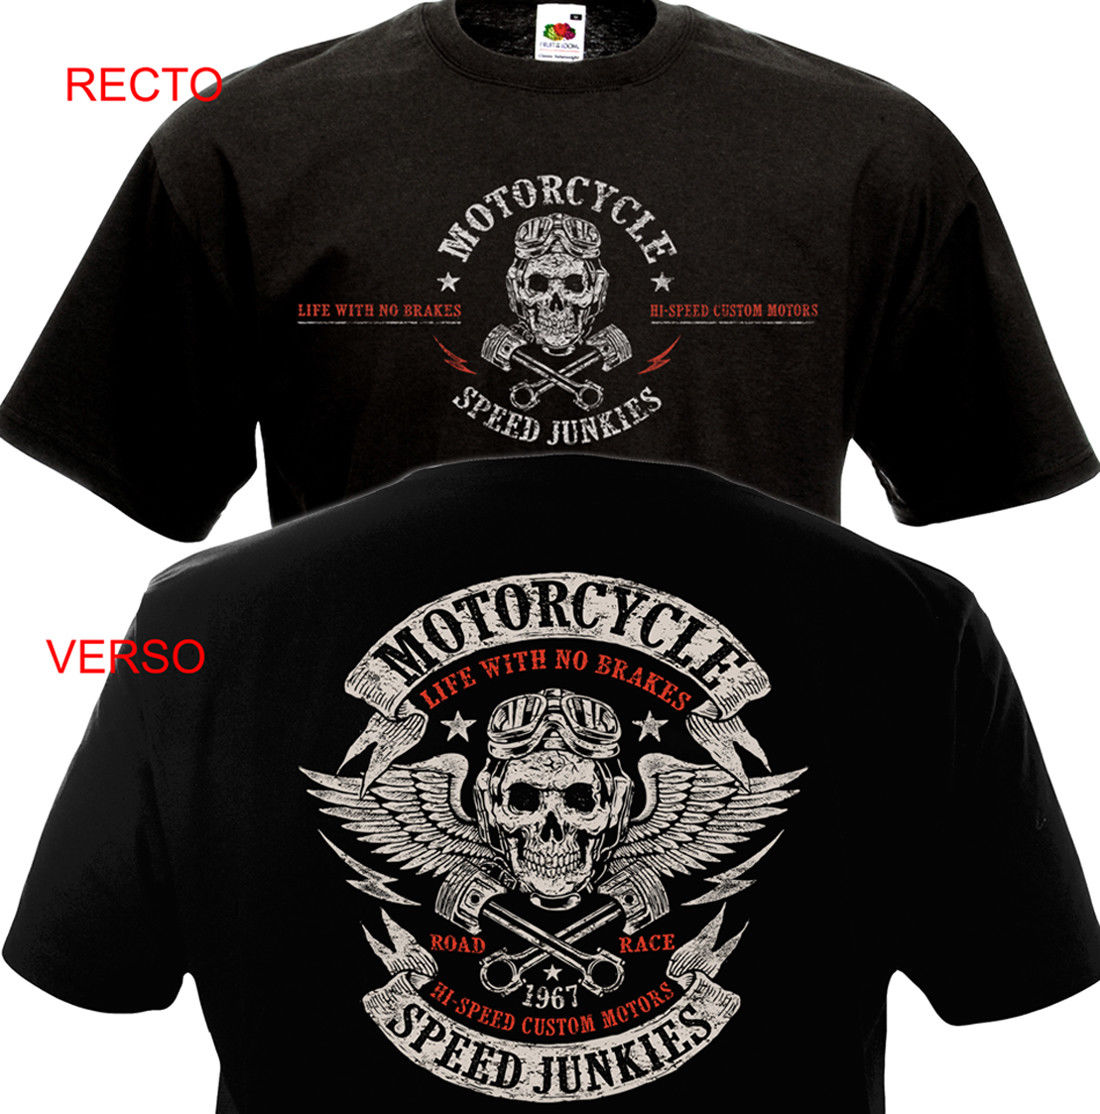 Funny Clothing Casual Short Sleeve Tshirts <font><b>T</b></font>-<font><b>shirt</b></font> MOTORCYCLE SPEED JUNKIES Biker Chopper Motard <font><b>MC</b></font> <font><b>T</b></font>-<font><b>shirt</b></font> image